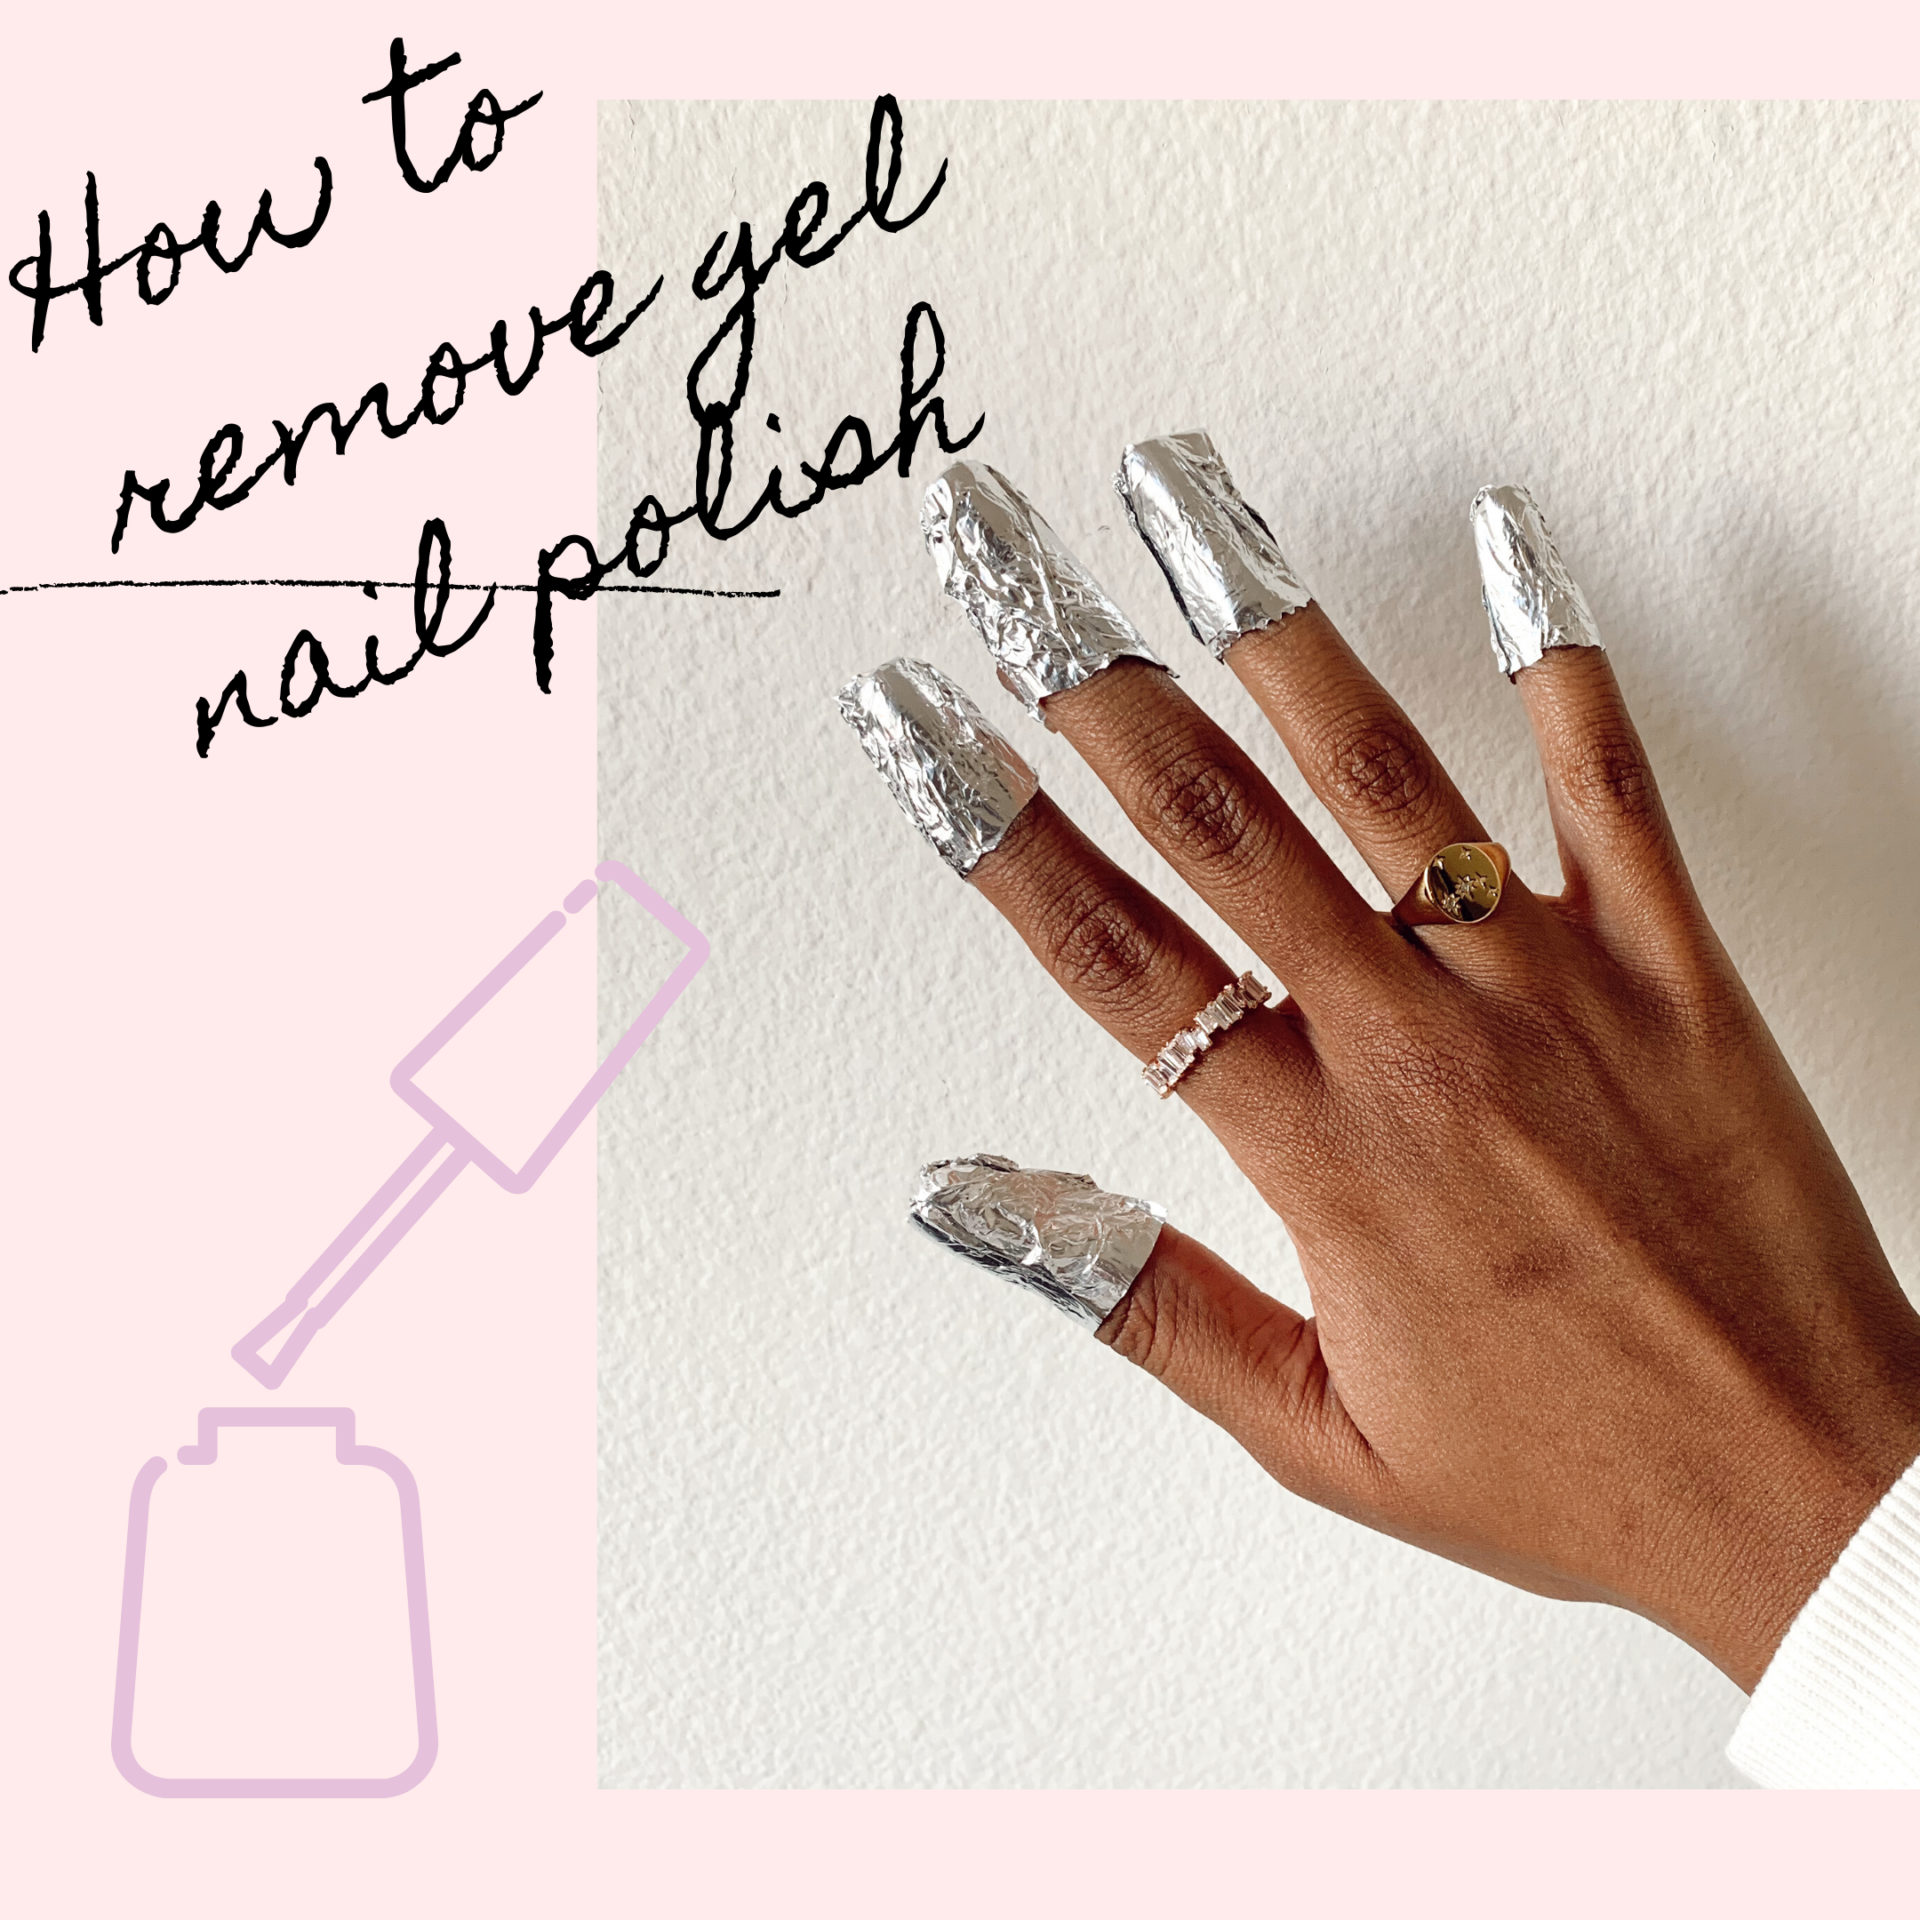 How to remove gel nail polish at home - le fab chic